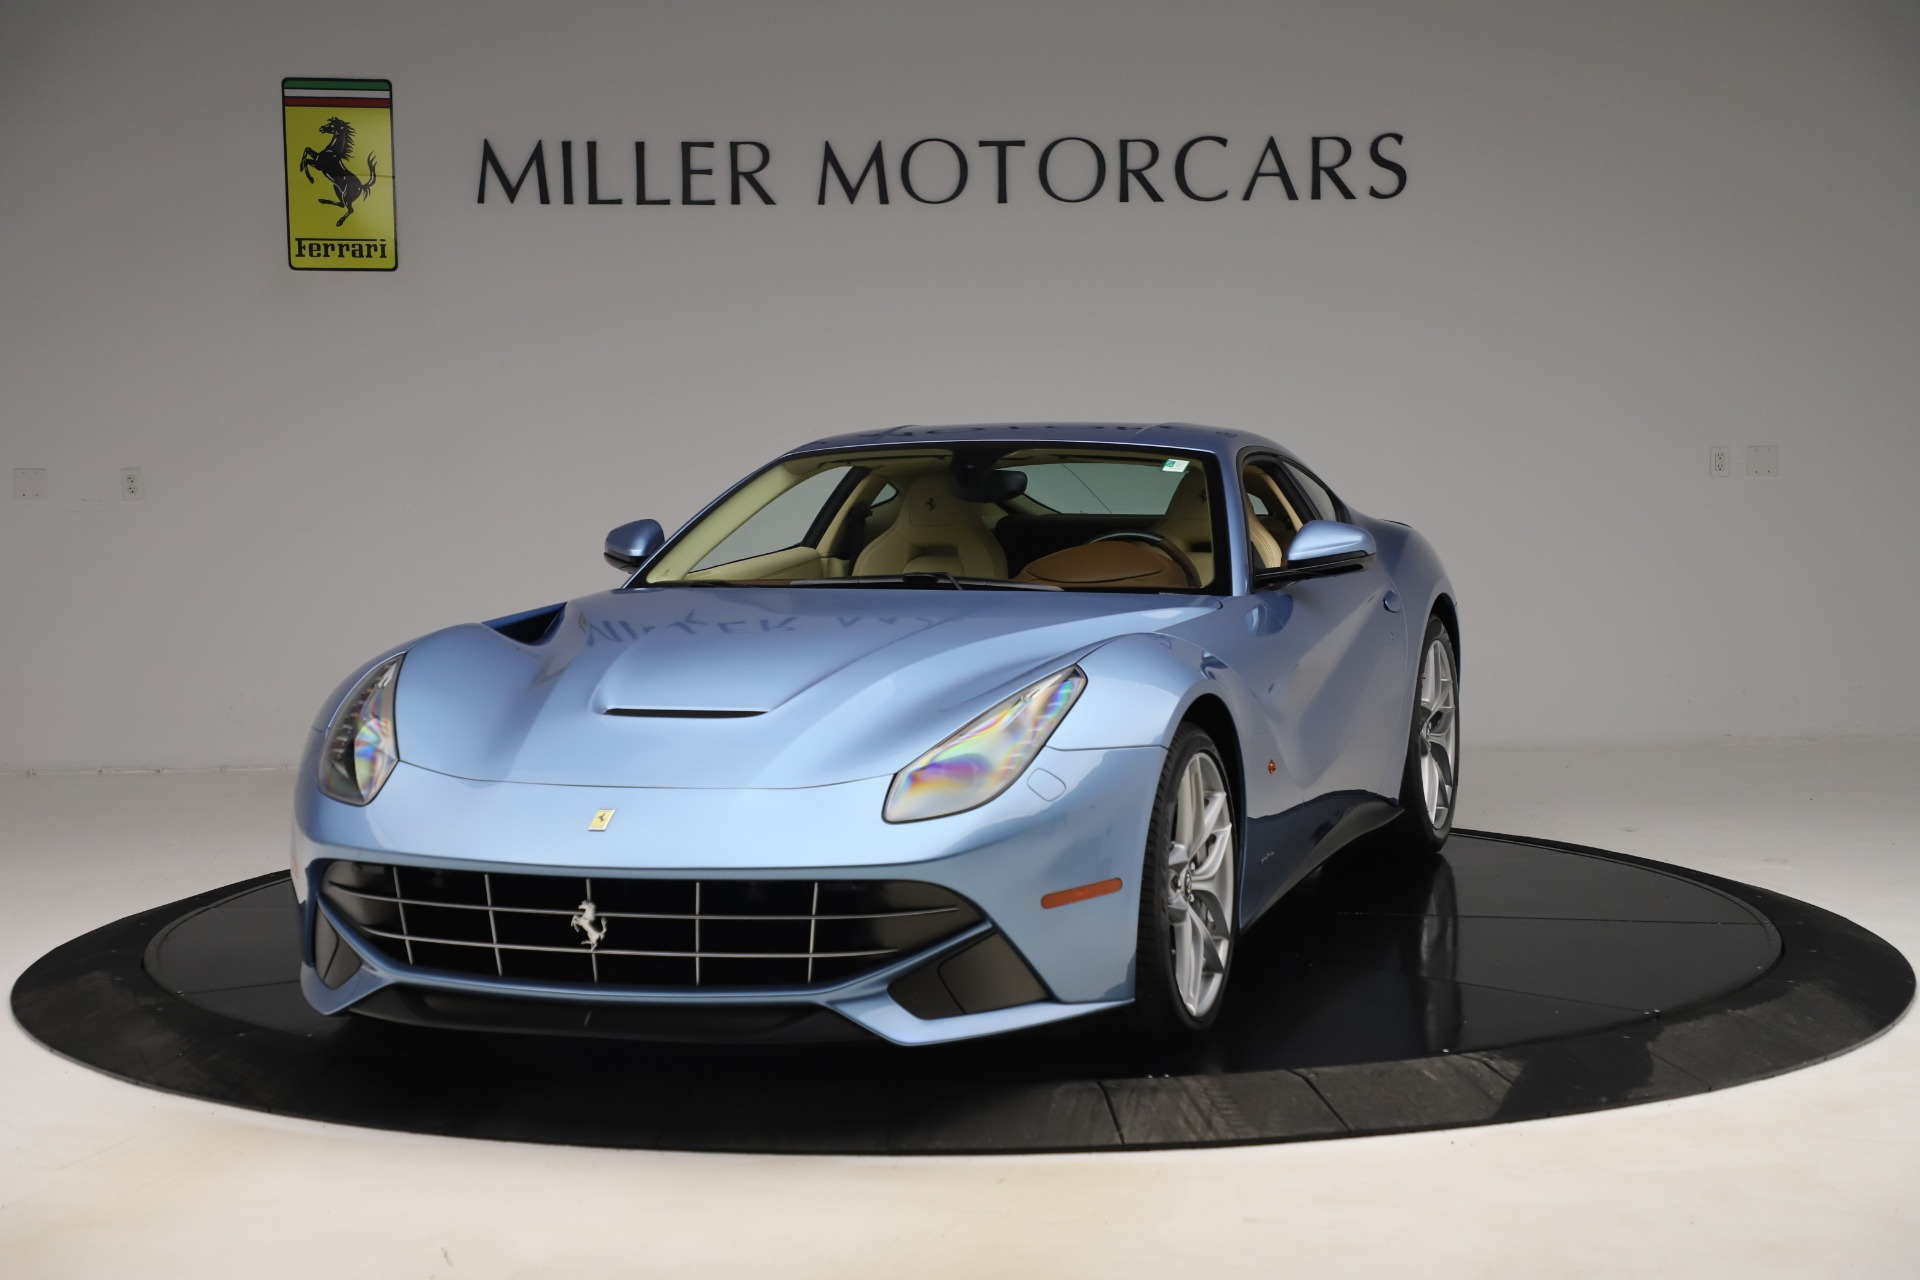 Used 2015 Ferrari F12 Berlinetta for sale Sold at Bentley Greenwich in Greenwich CT 06830 1